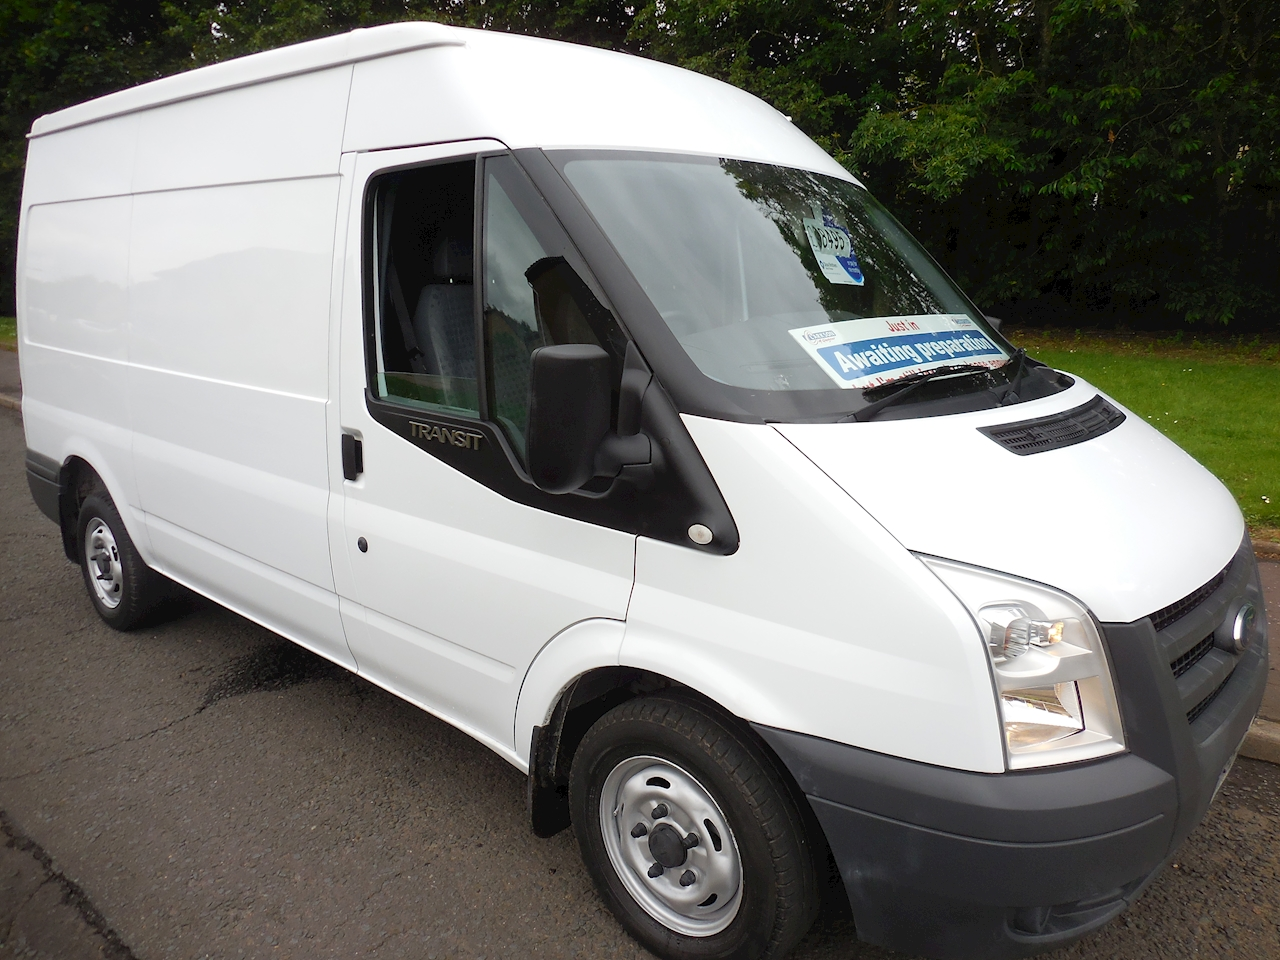 Ford Transit 280 Medium Wheel Base / medium roof (MWB) 2.2 Panel Van Manual Diesel